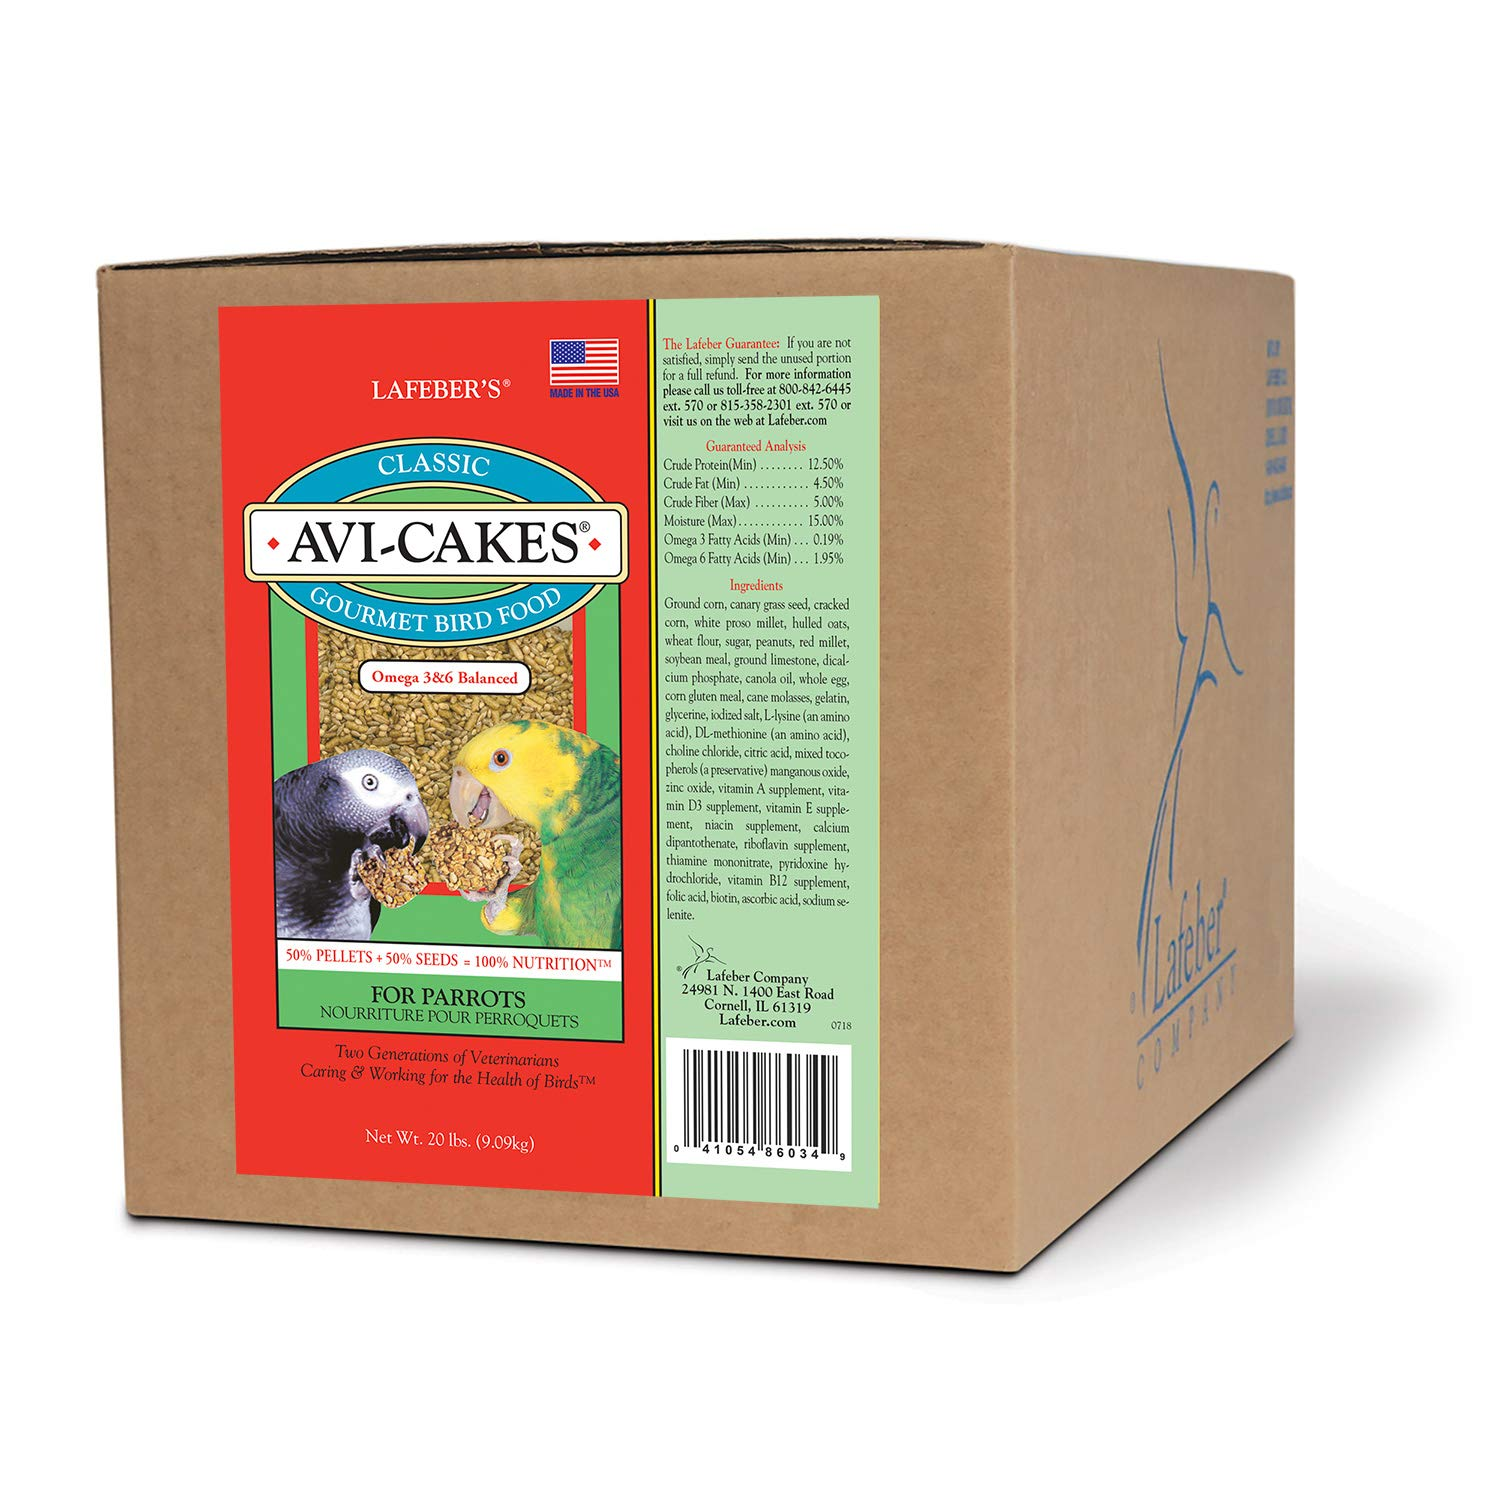 LAFEBER'S Classic Avi-Cakes Pet Bird Food, Made with Non-GMO and Human-Grade Ingredients, for Parrots, 20 lbs by LAFEBER'S